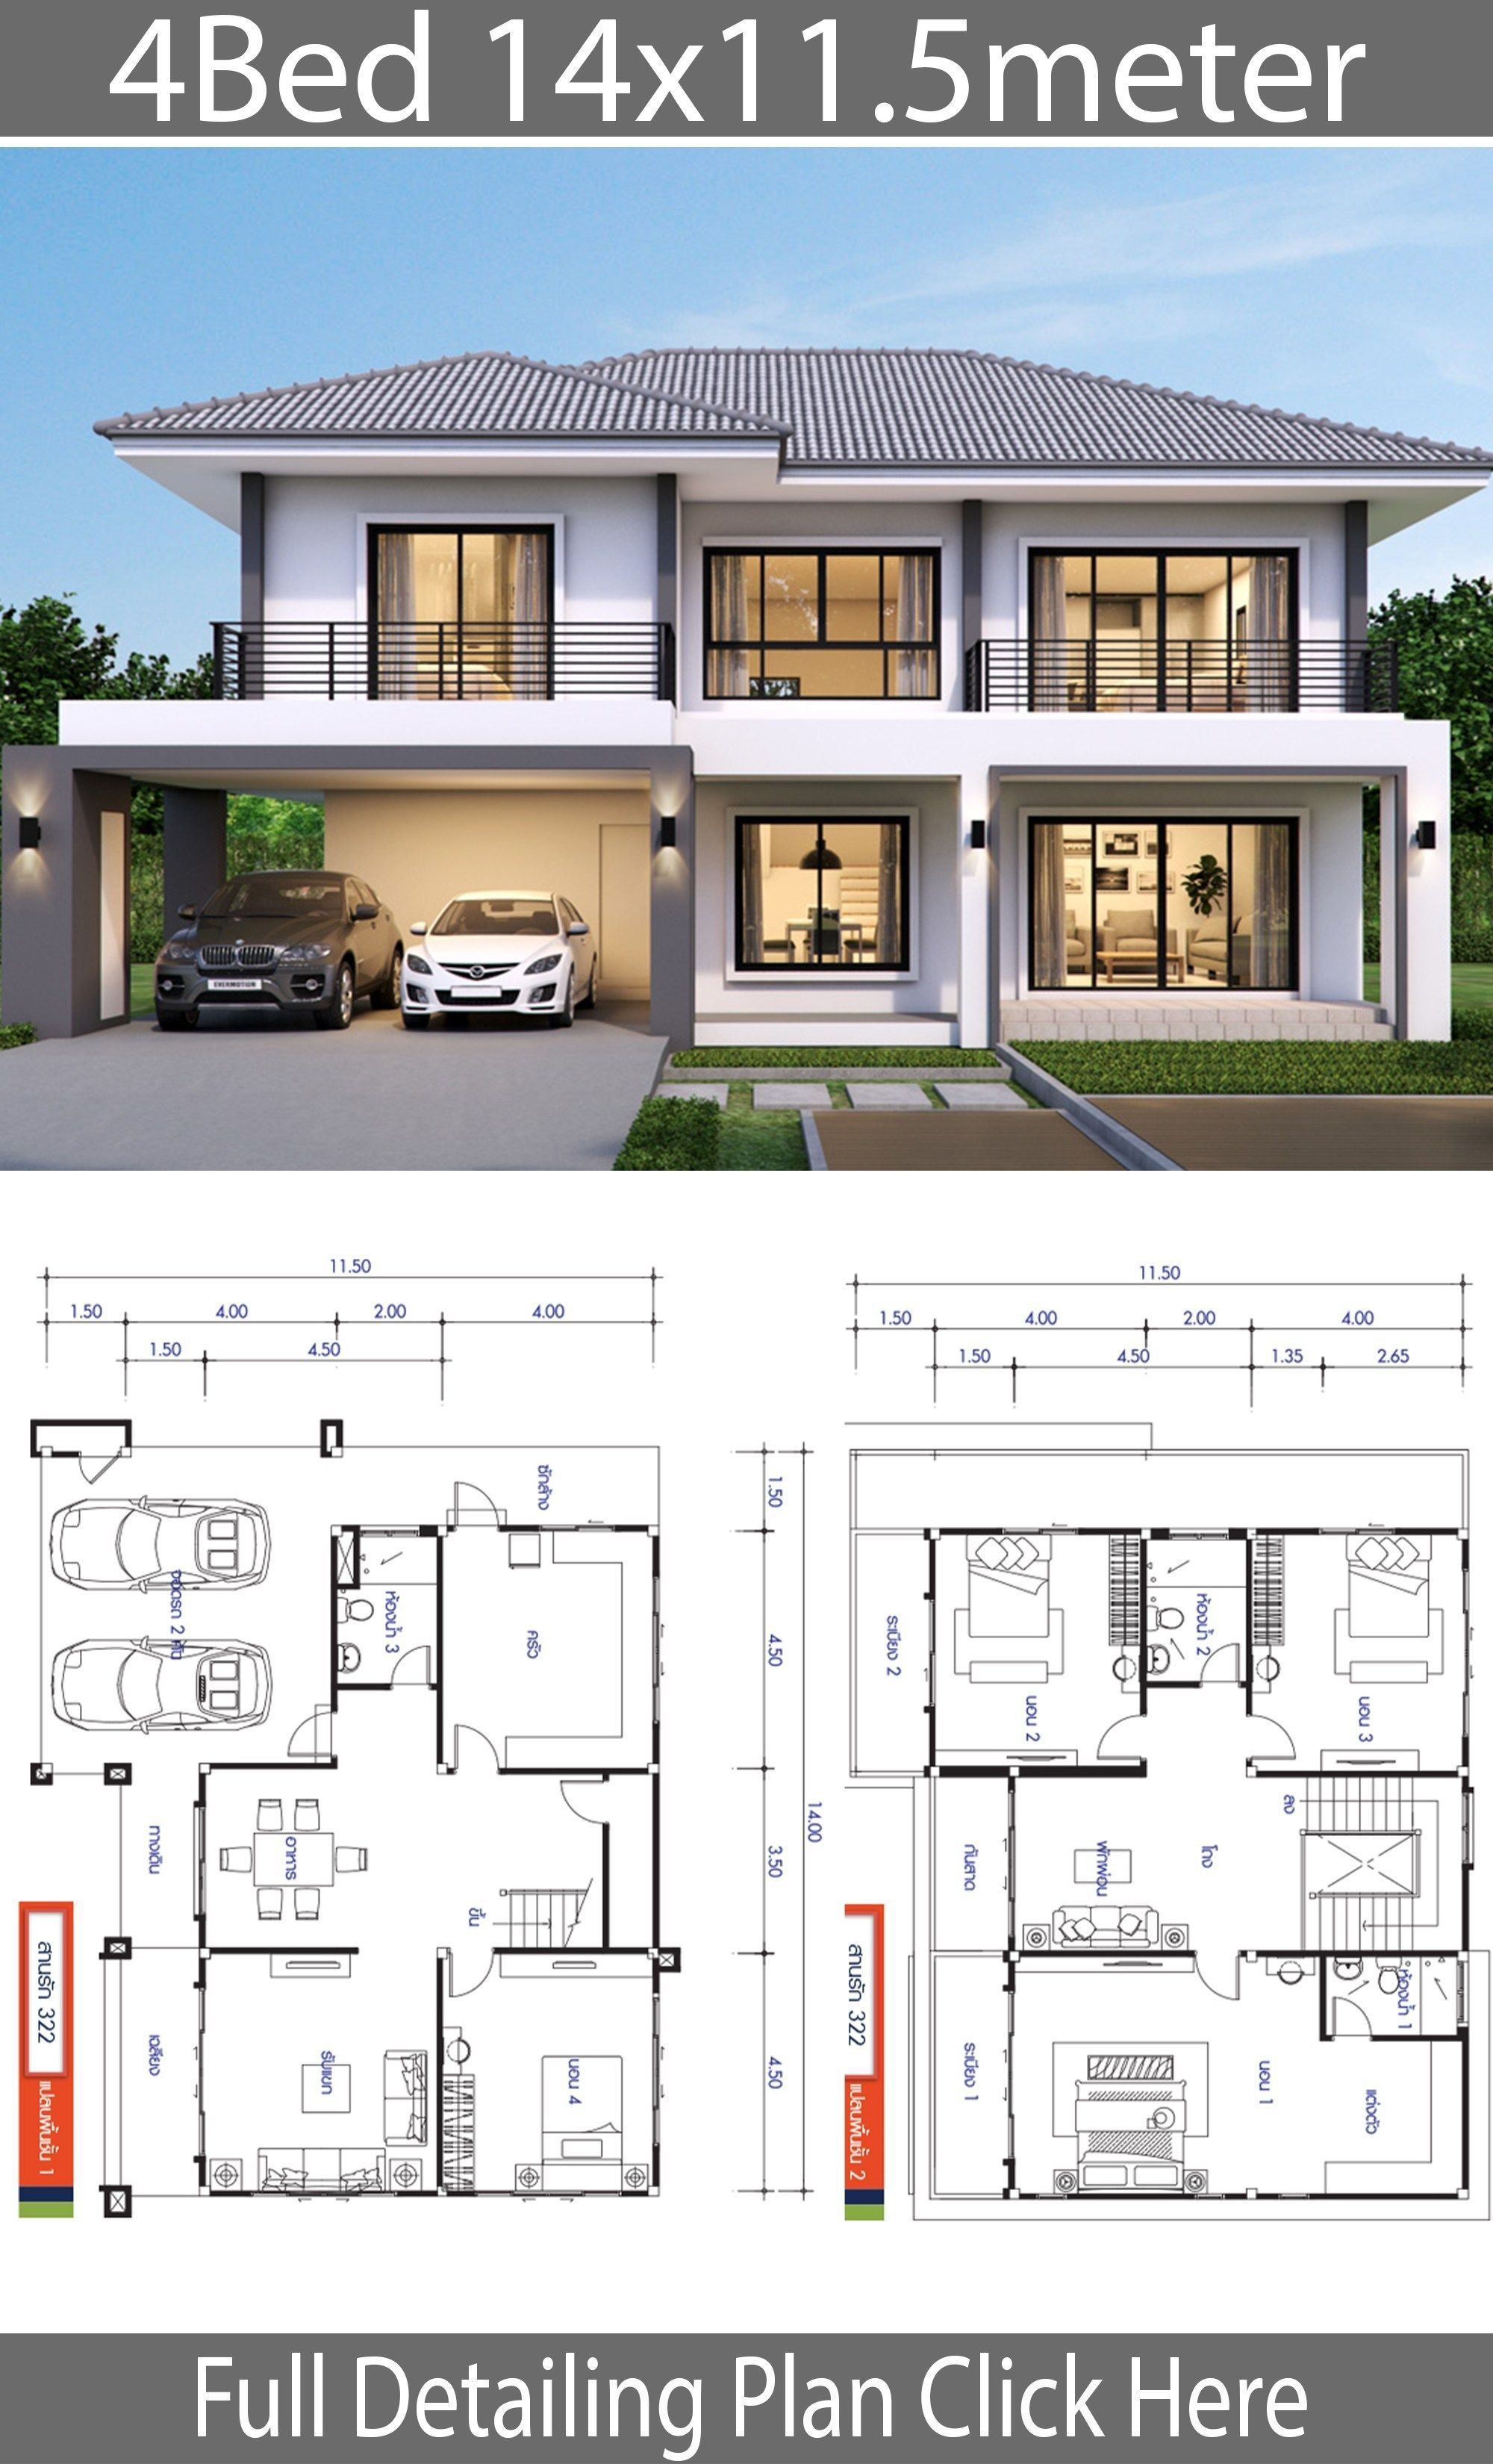 House design plan 14x11.5m with 4 bedrooms - #14x11.5m #4 #Bedrooms #design #House #Plan #With